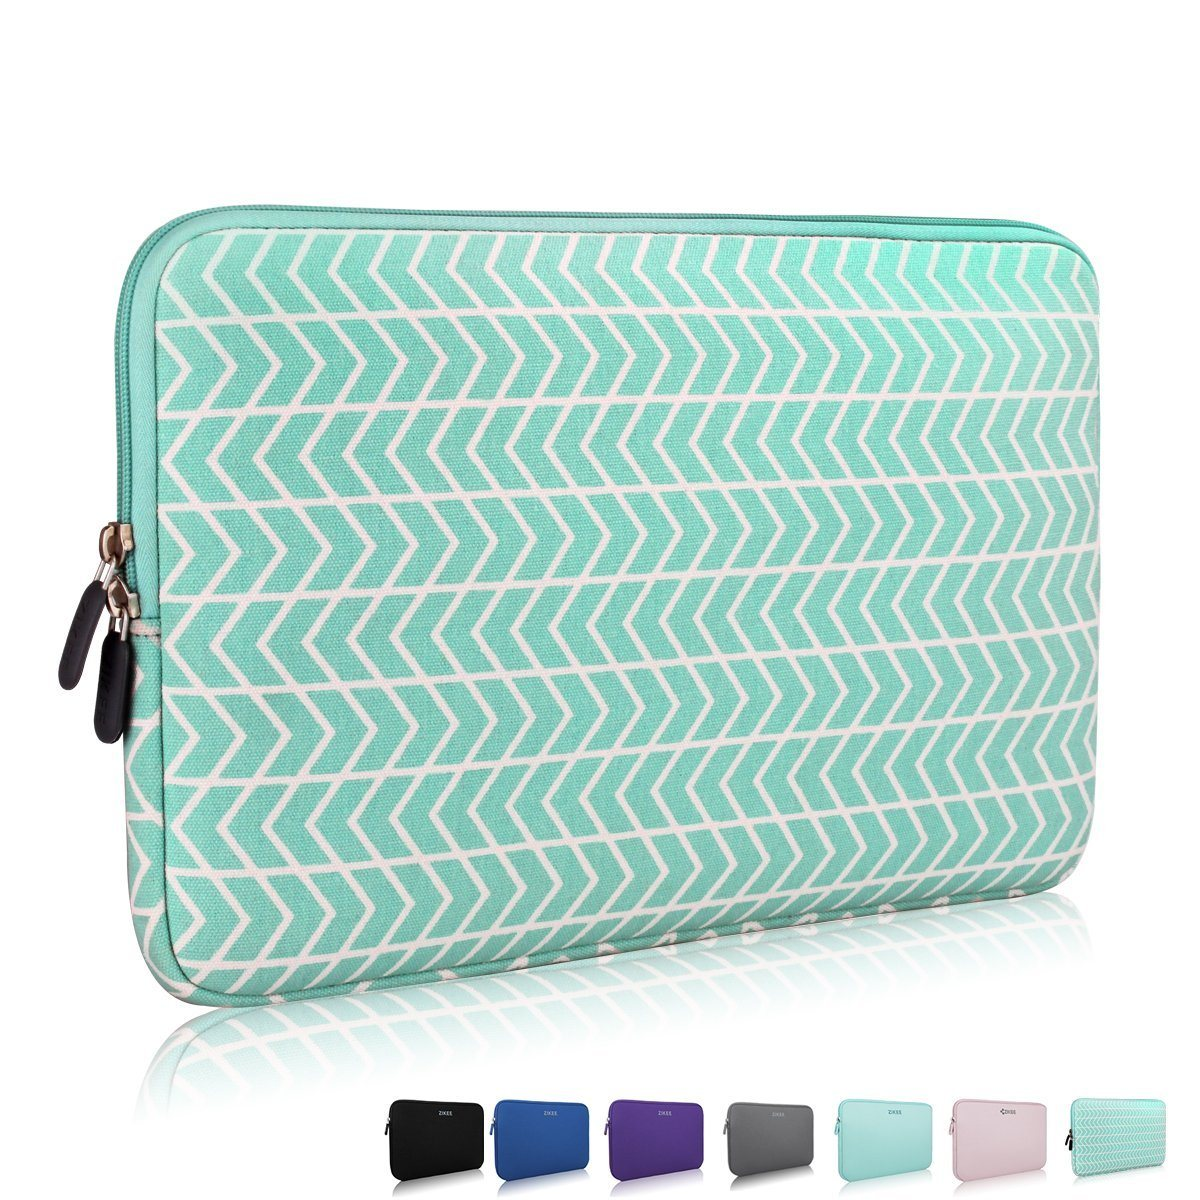 b059b655aa95 [Hot Item] 15-15.6 Inch Thickest Lightest Water Resistant Neoprene  Protective Laptop Case/Sleeve